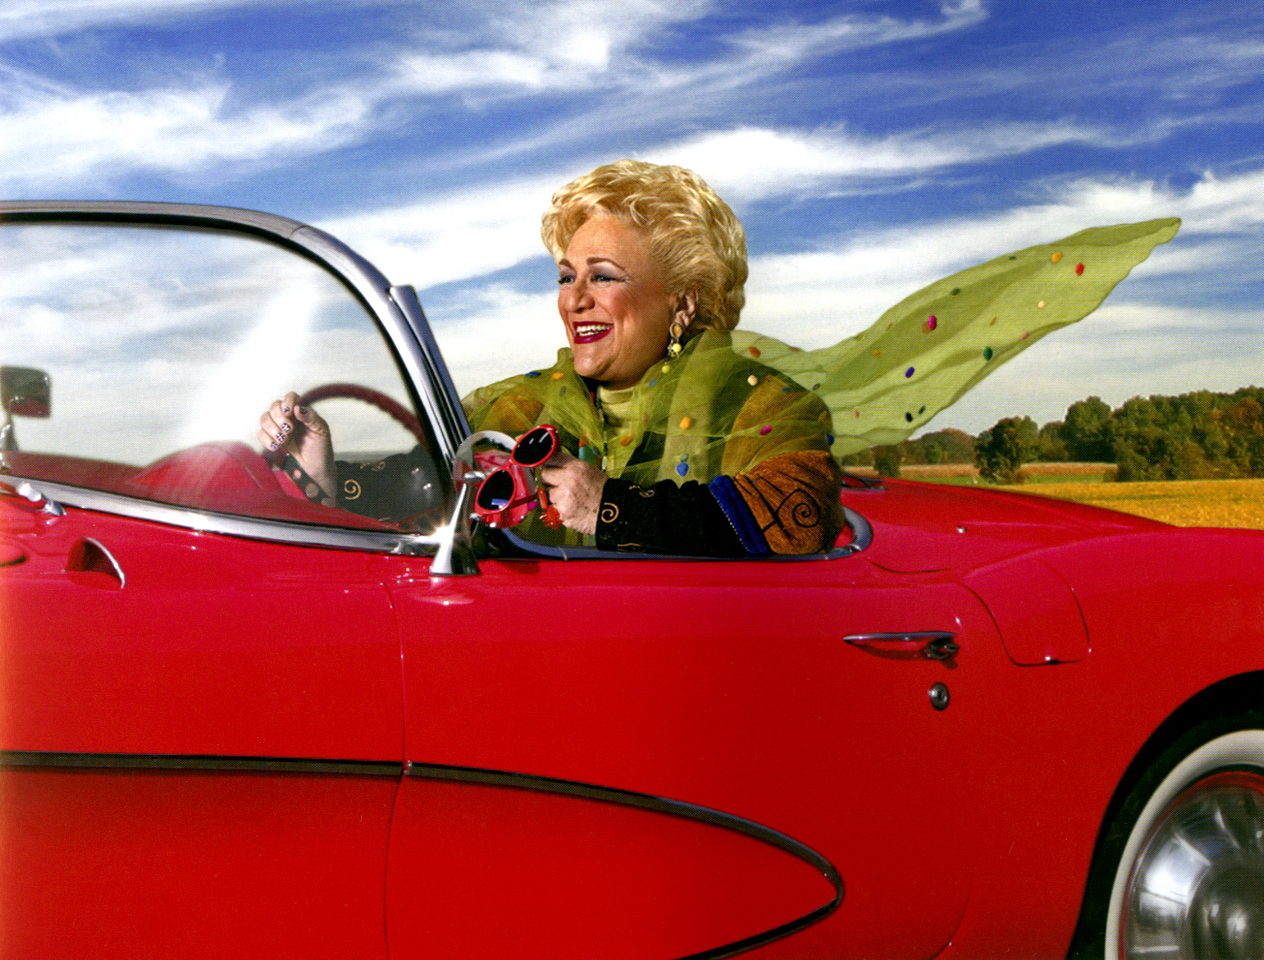 Sally Smith in red corvette